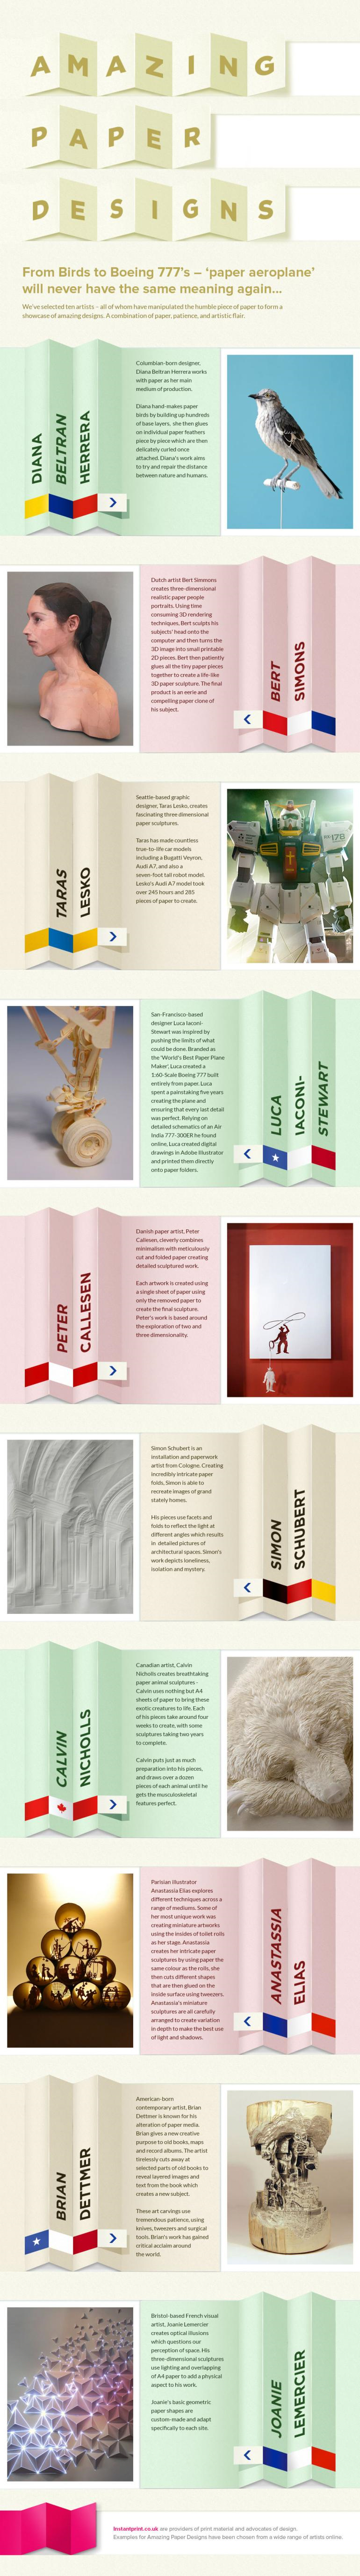 amazing-paper-designs-infographic.png